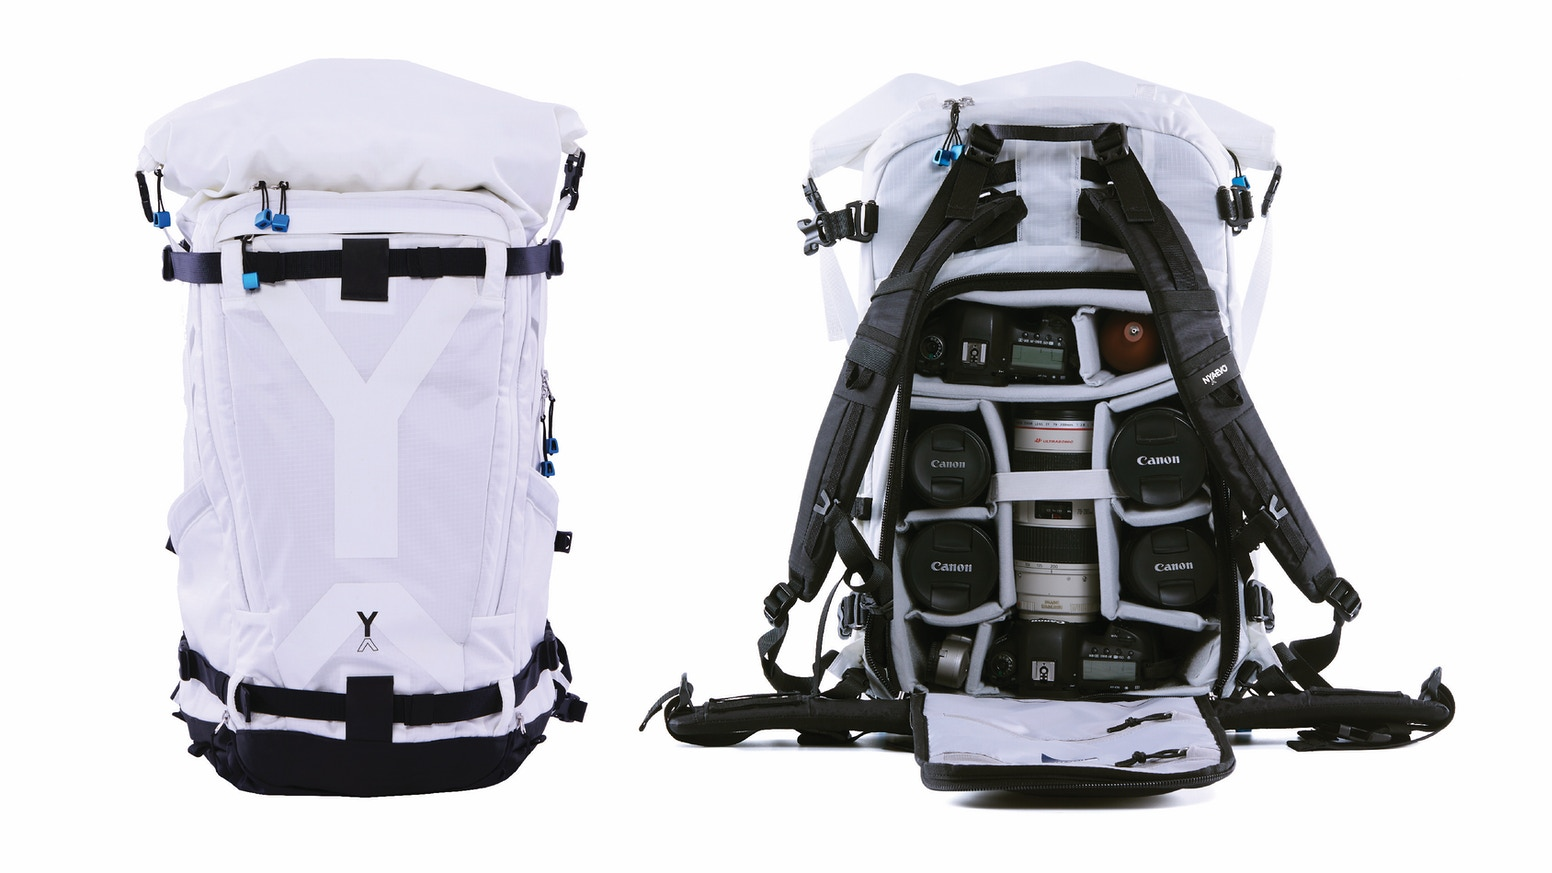 Introducing NYA-EVO's game-changing range of carry-on adventure backpacks and removable camera inserts.